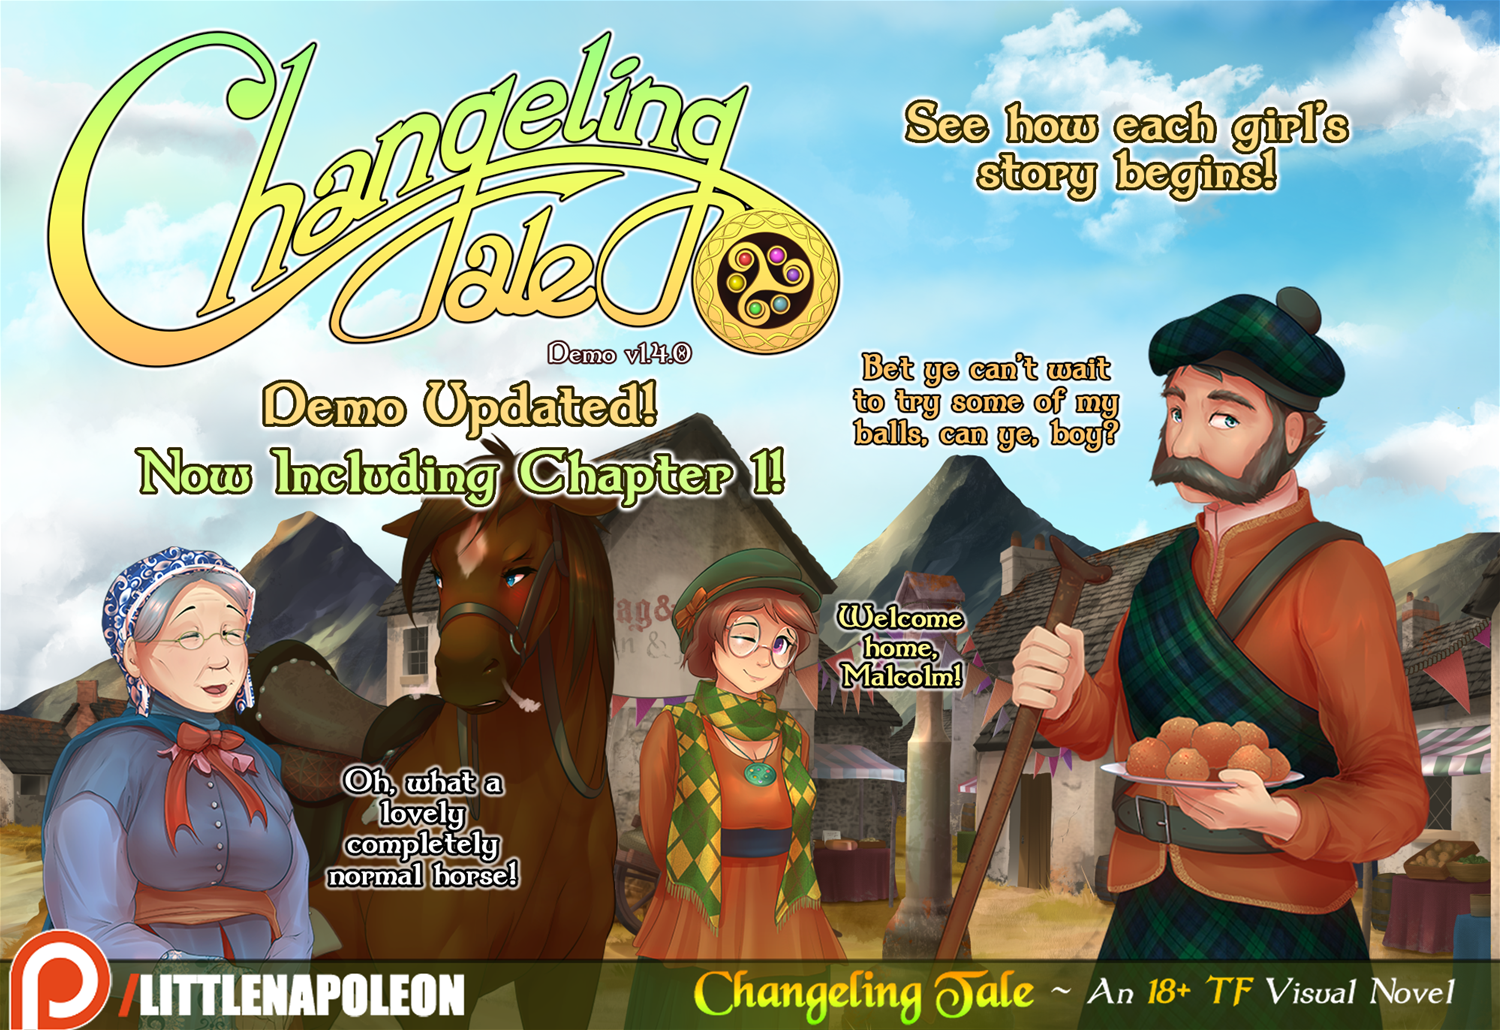 Changeling Tale - New Demo Content Added by Little Napoleon